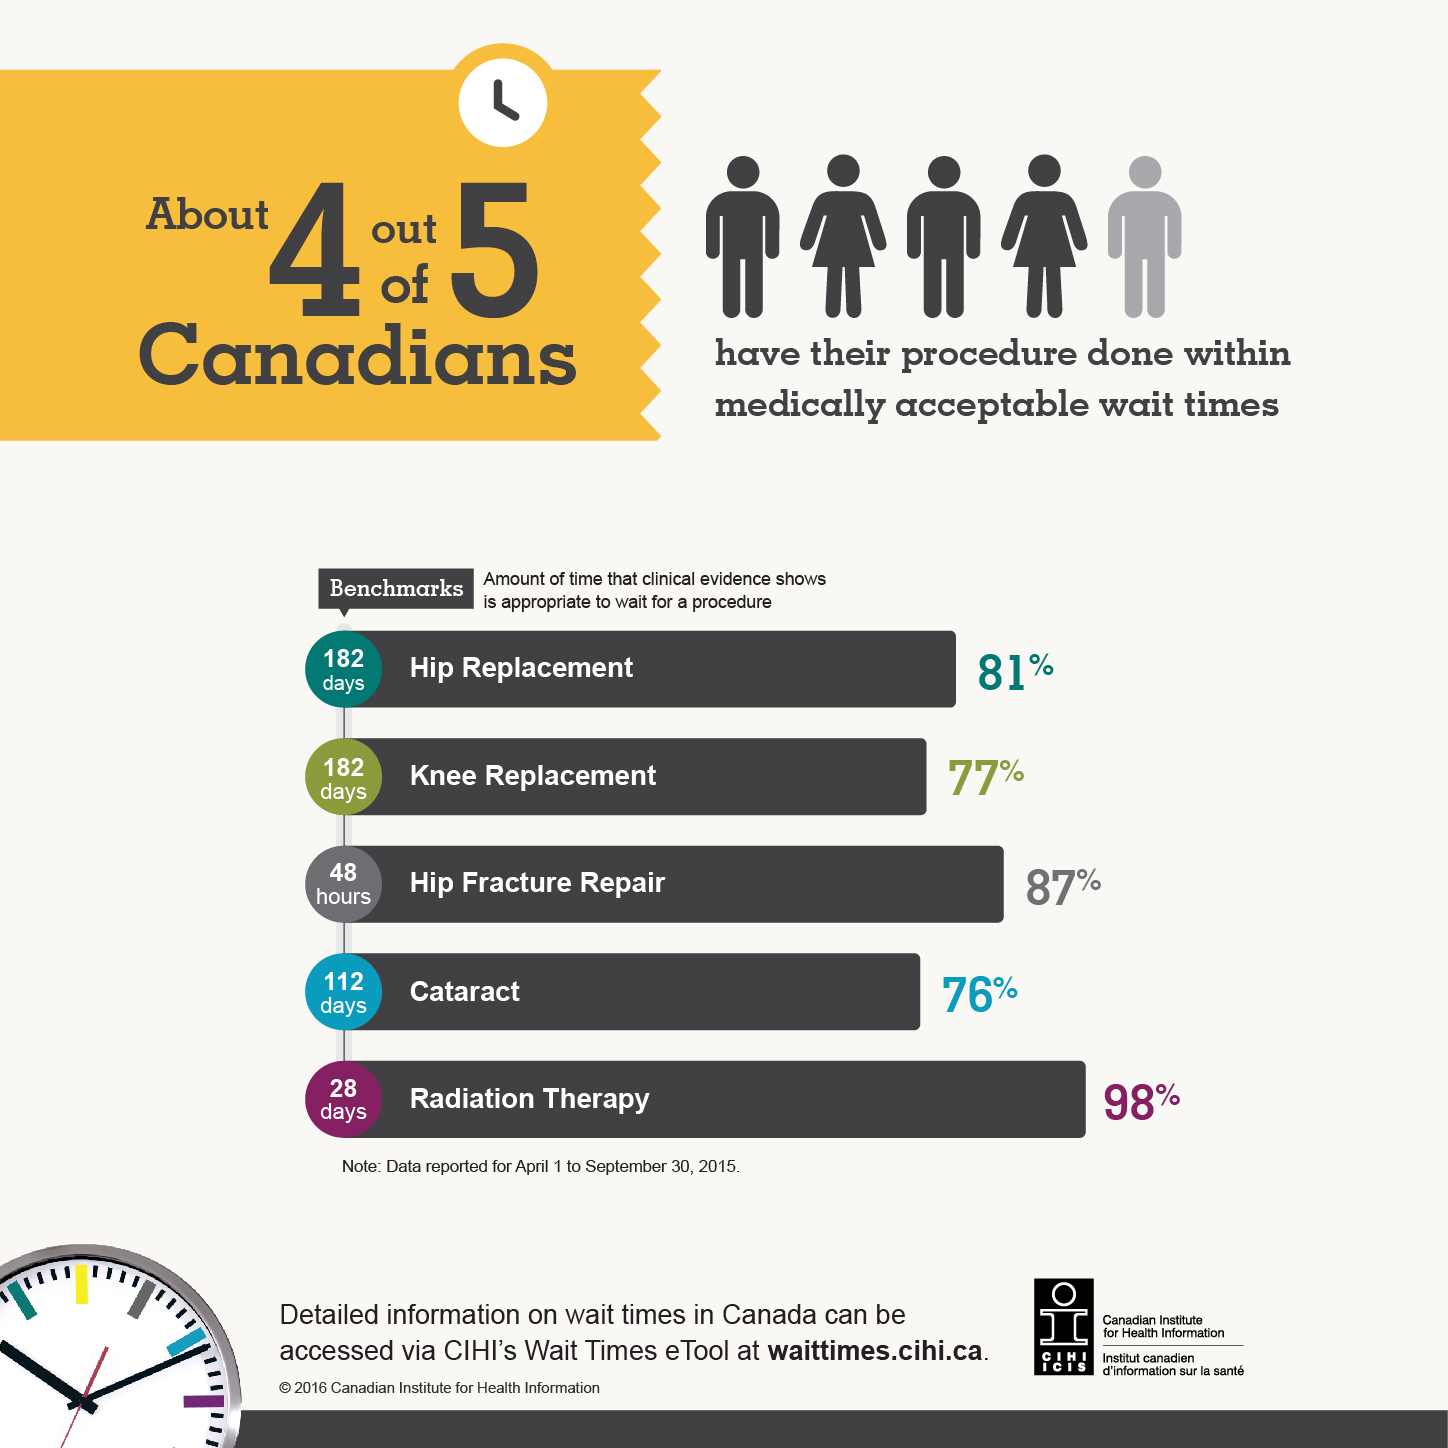 Infographic: About 4 out of 5 Canadians have their procedure done within medically acceptable wait times